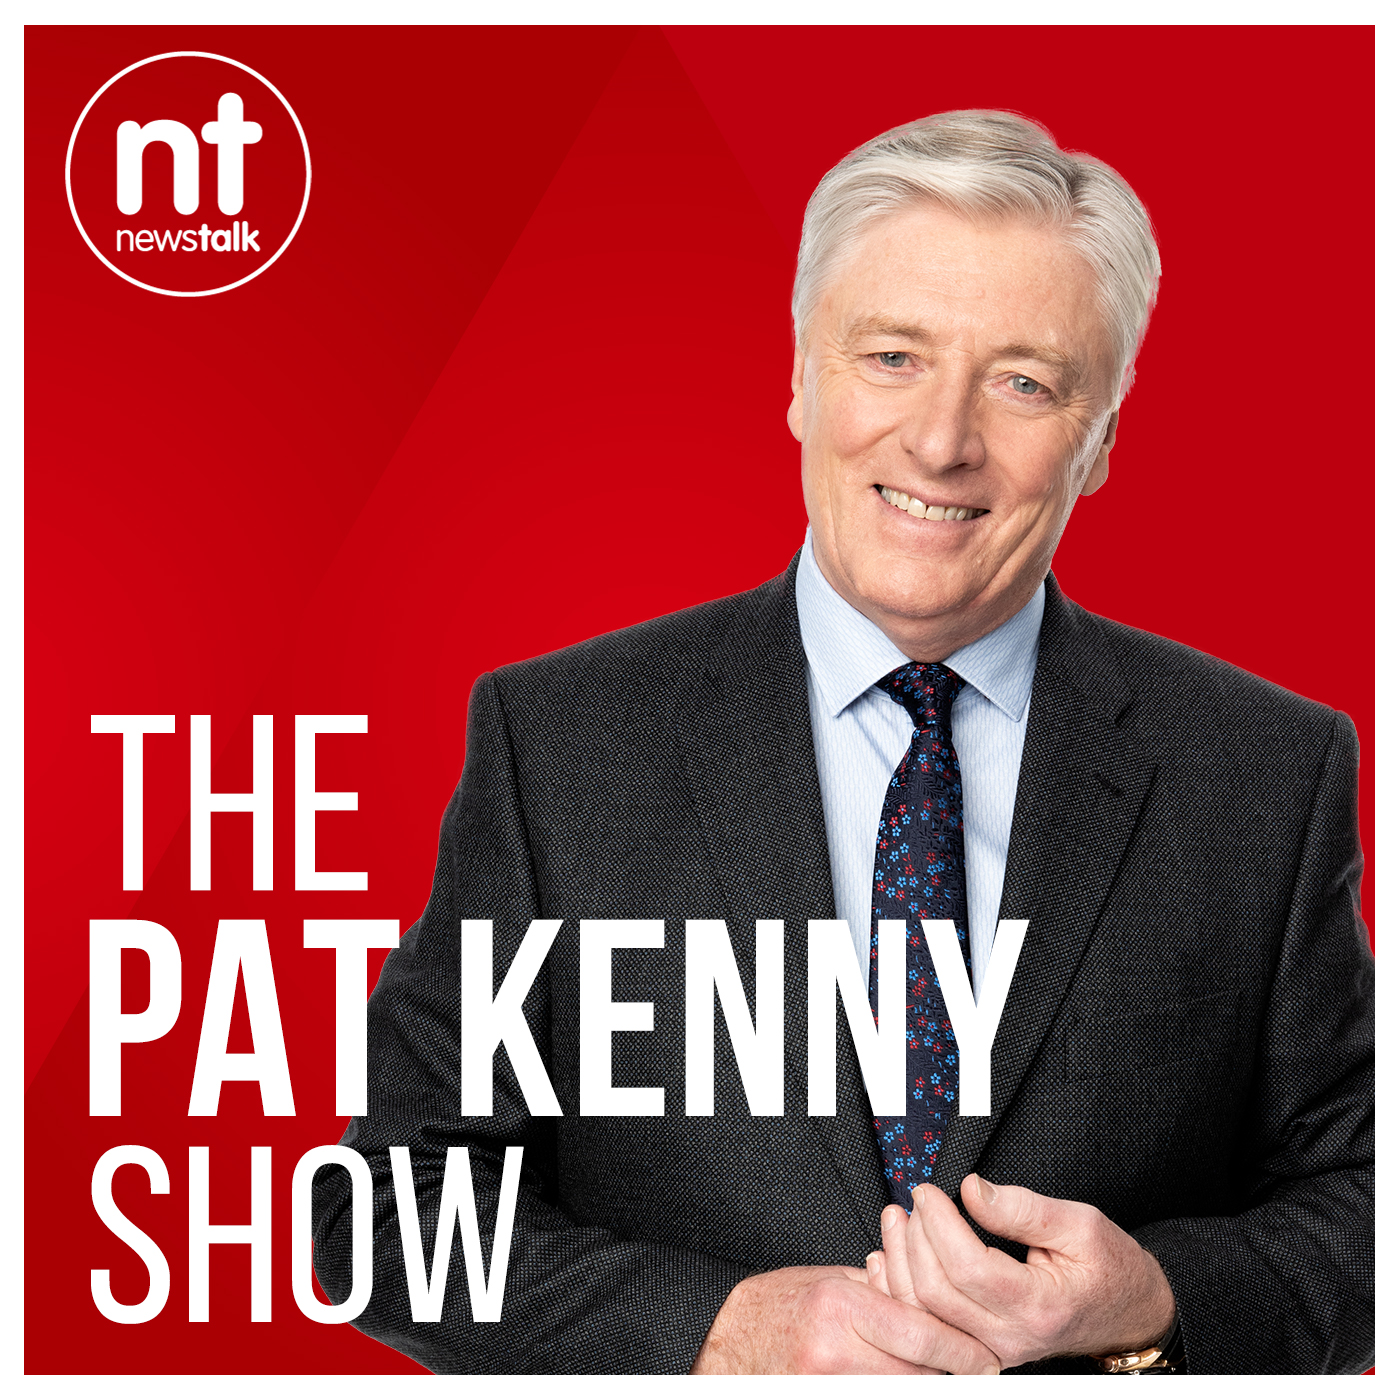 The Pat Kenny Show Highlights